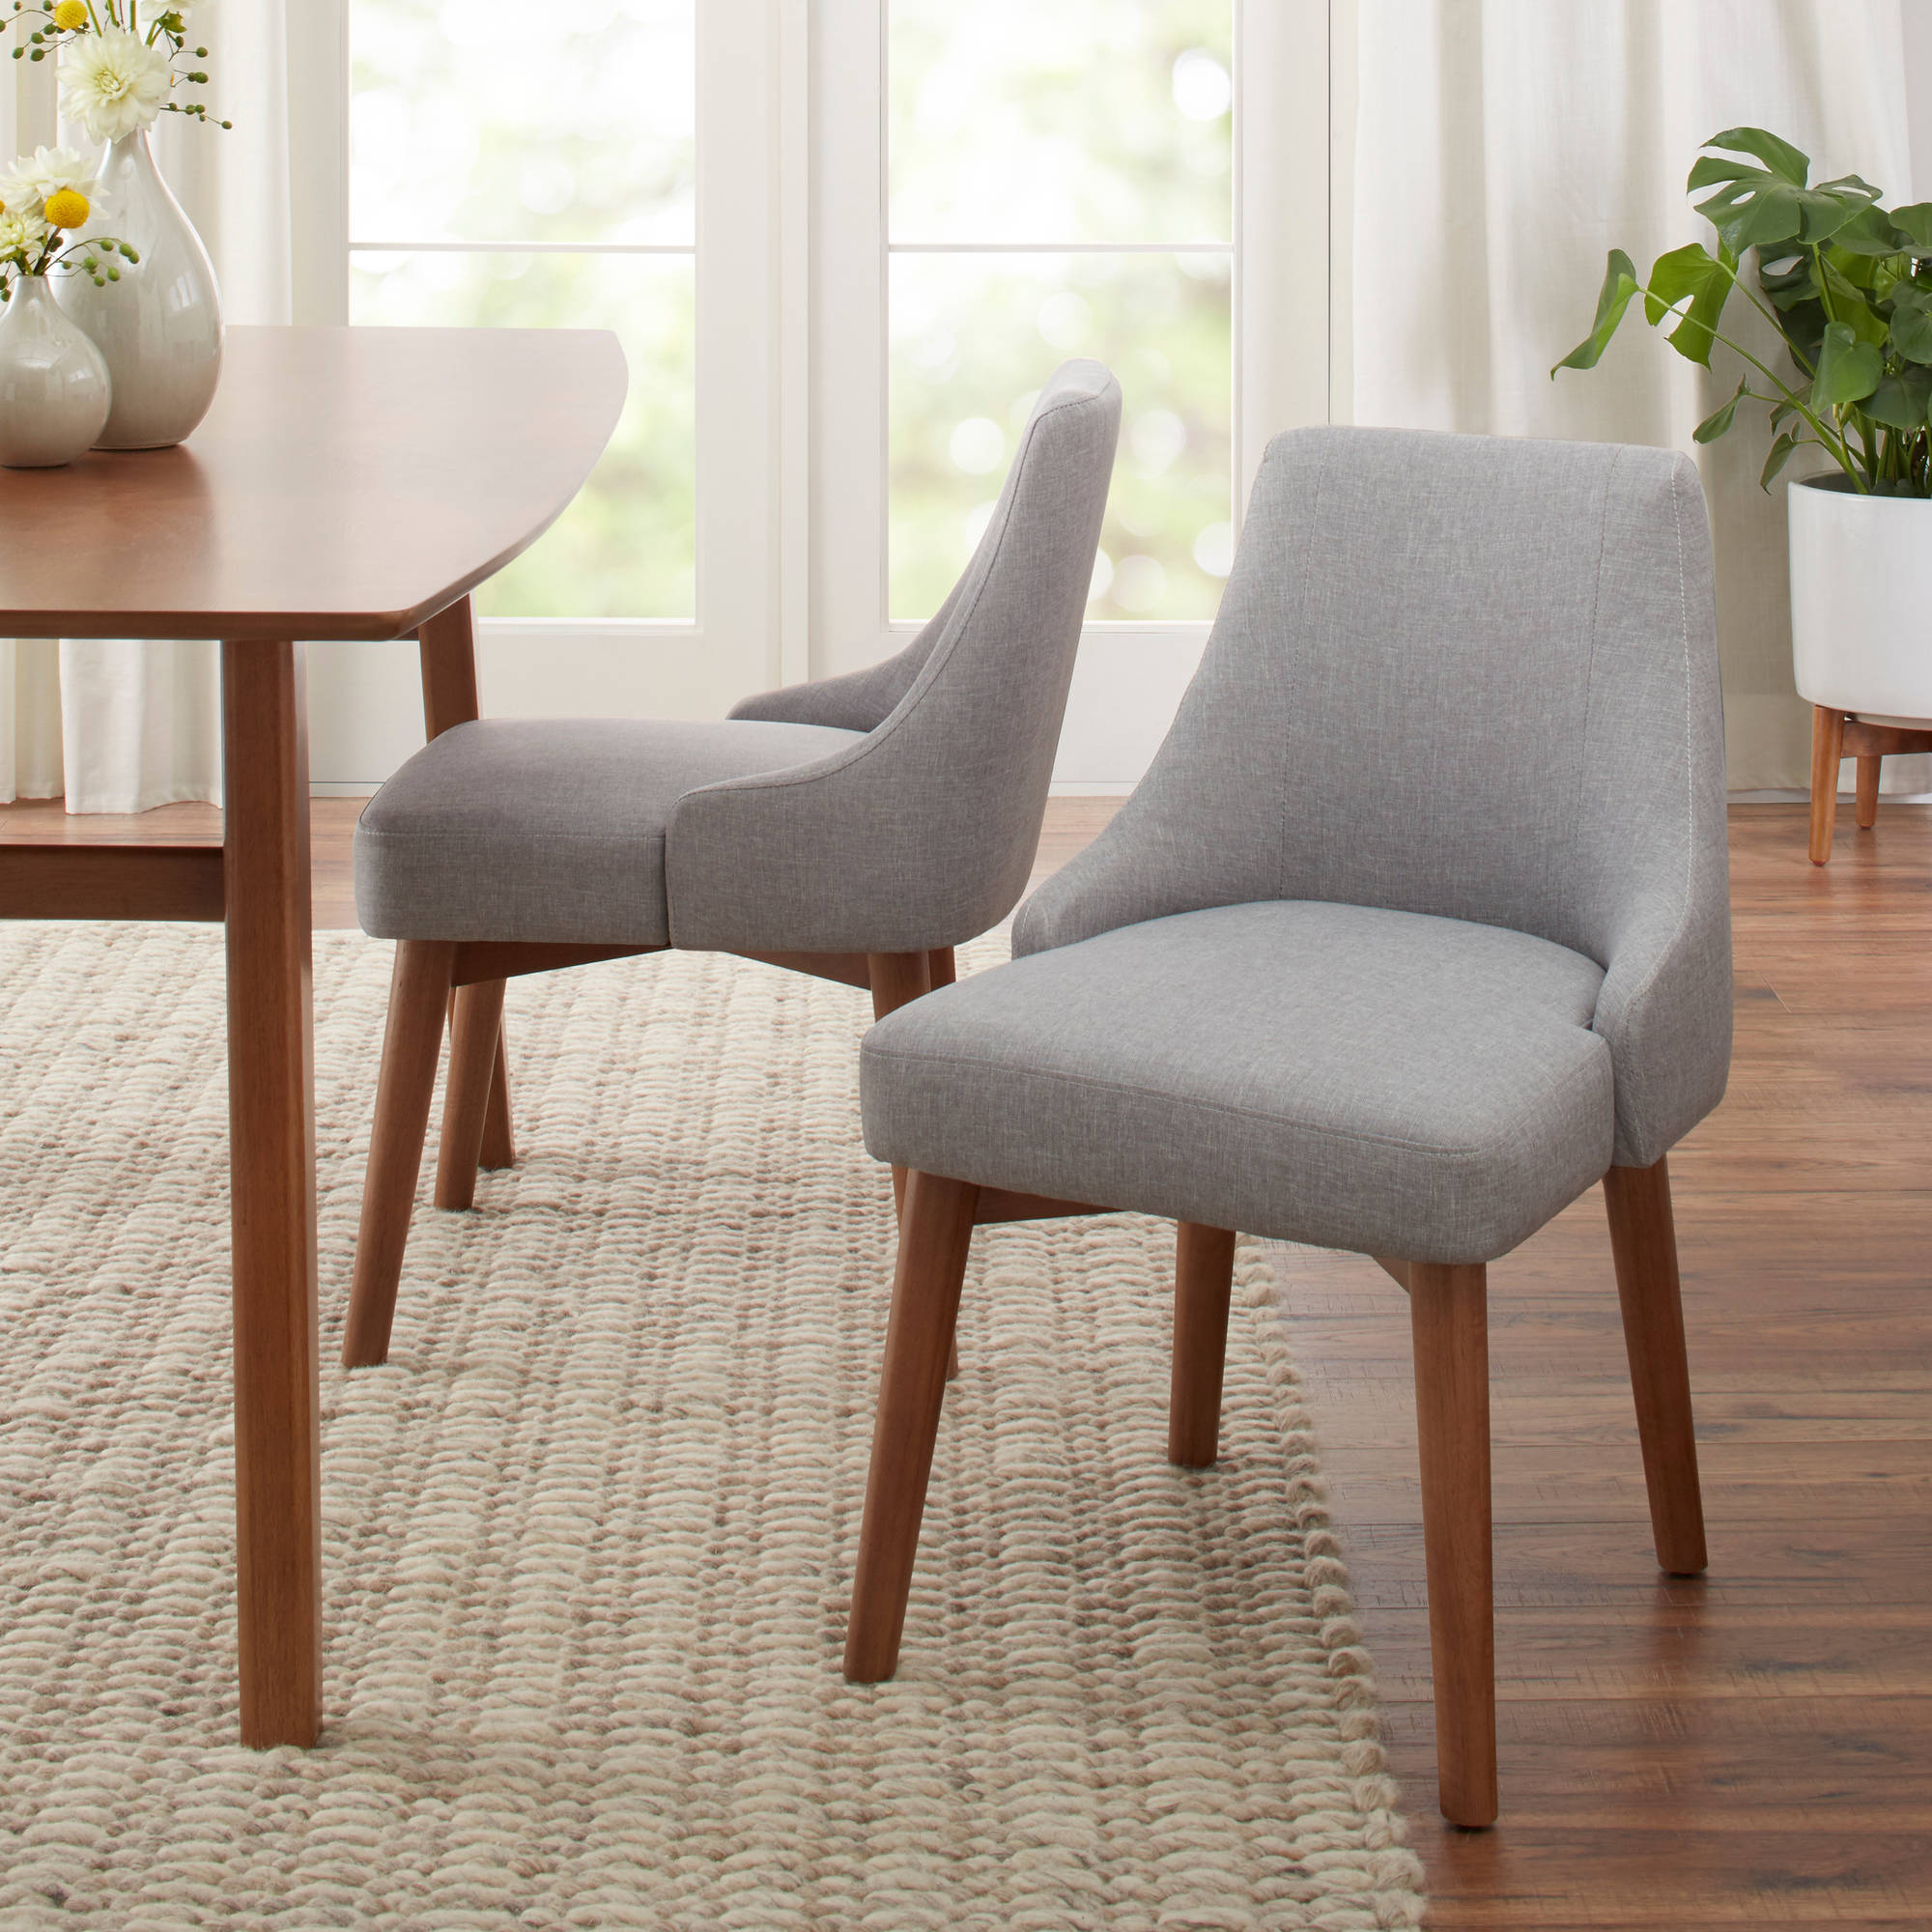 better homes and gardens reed mid century modern dining chair, set